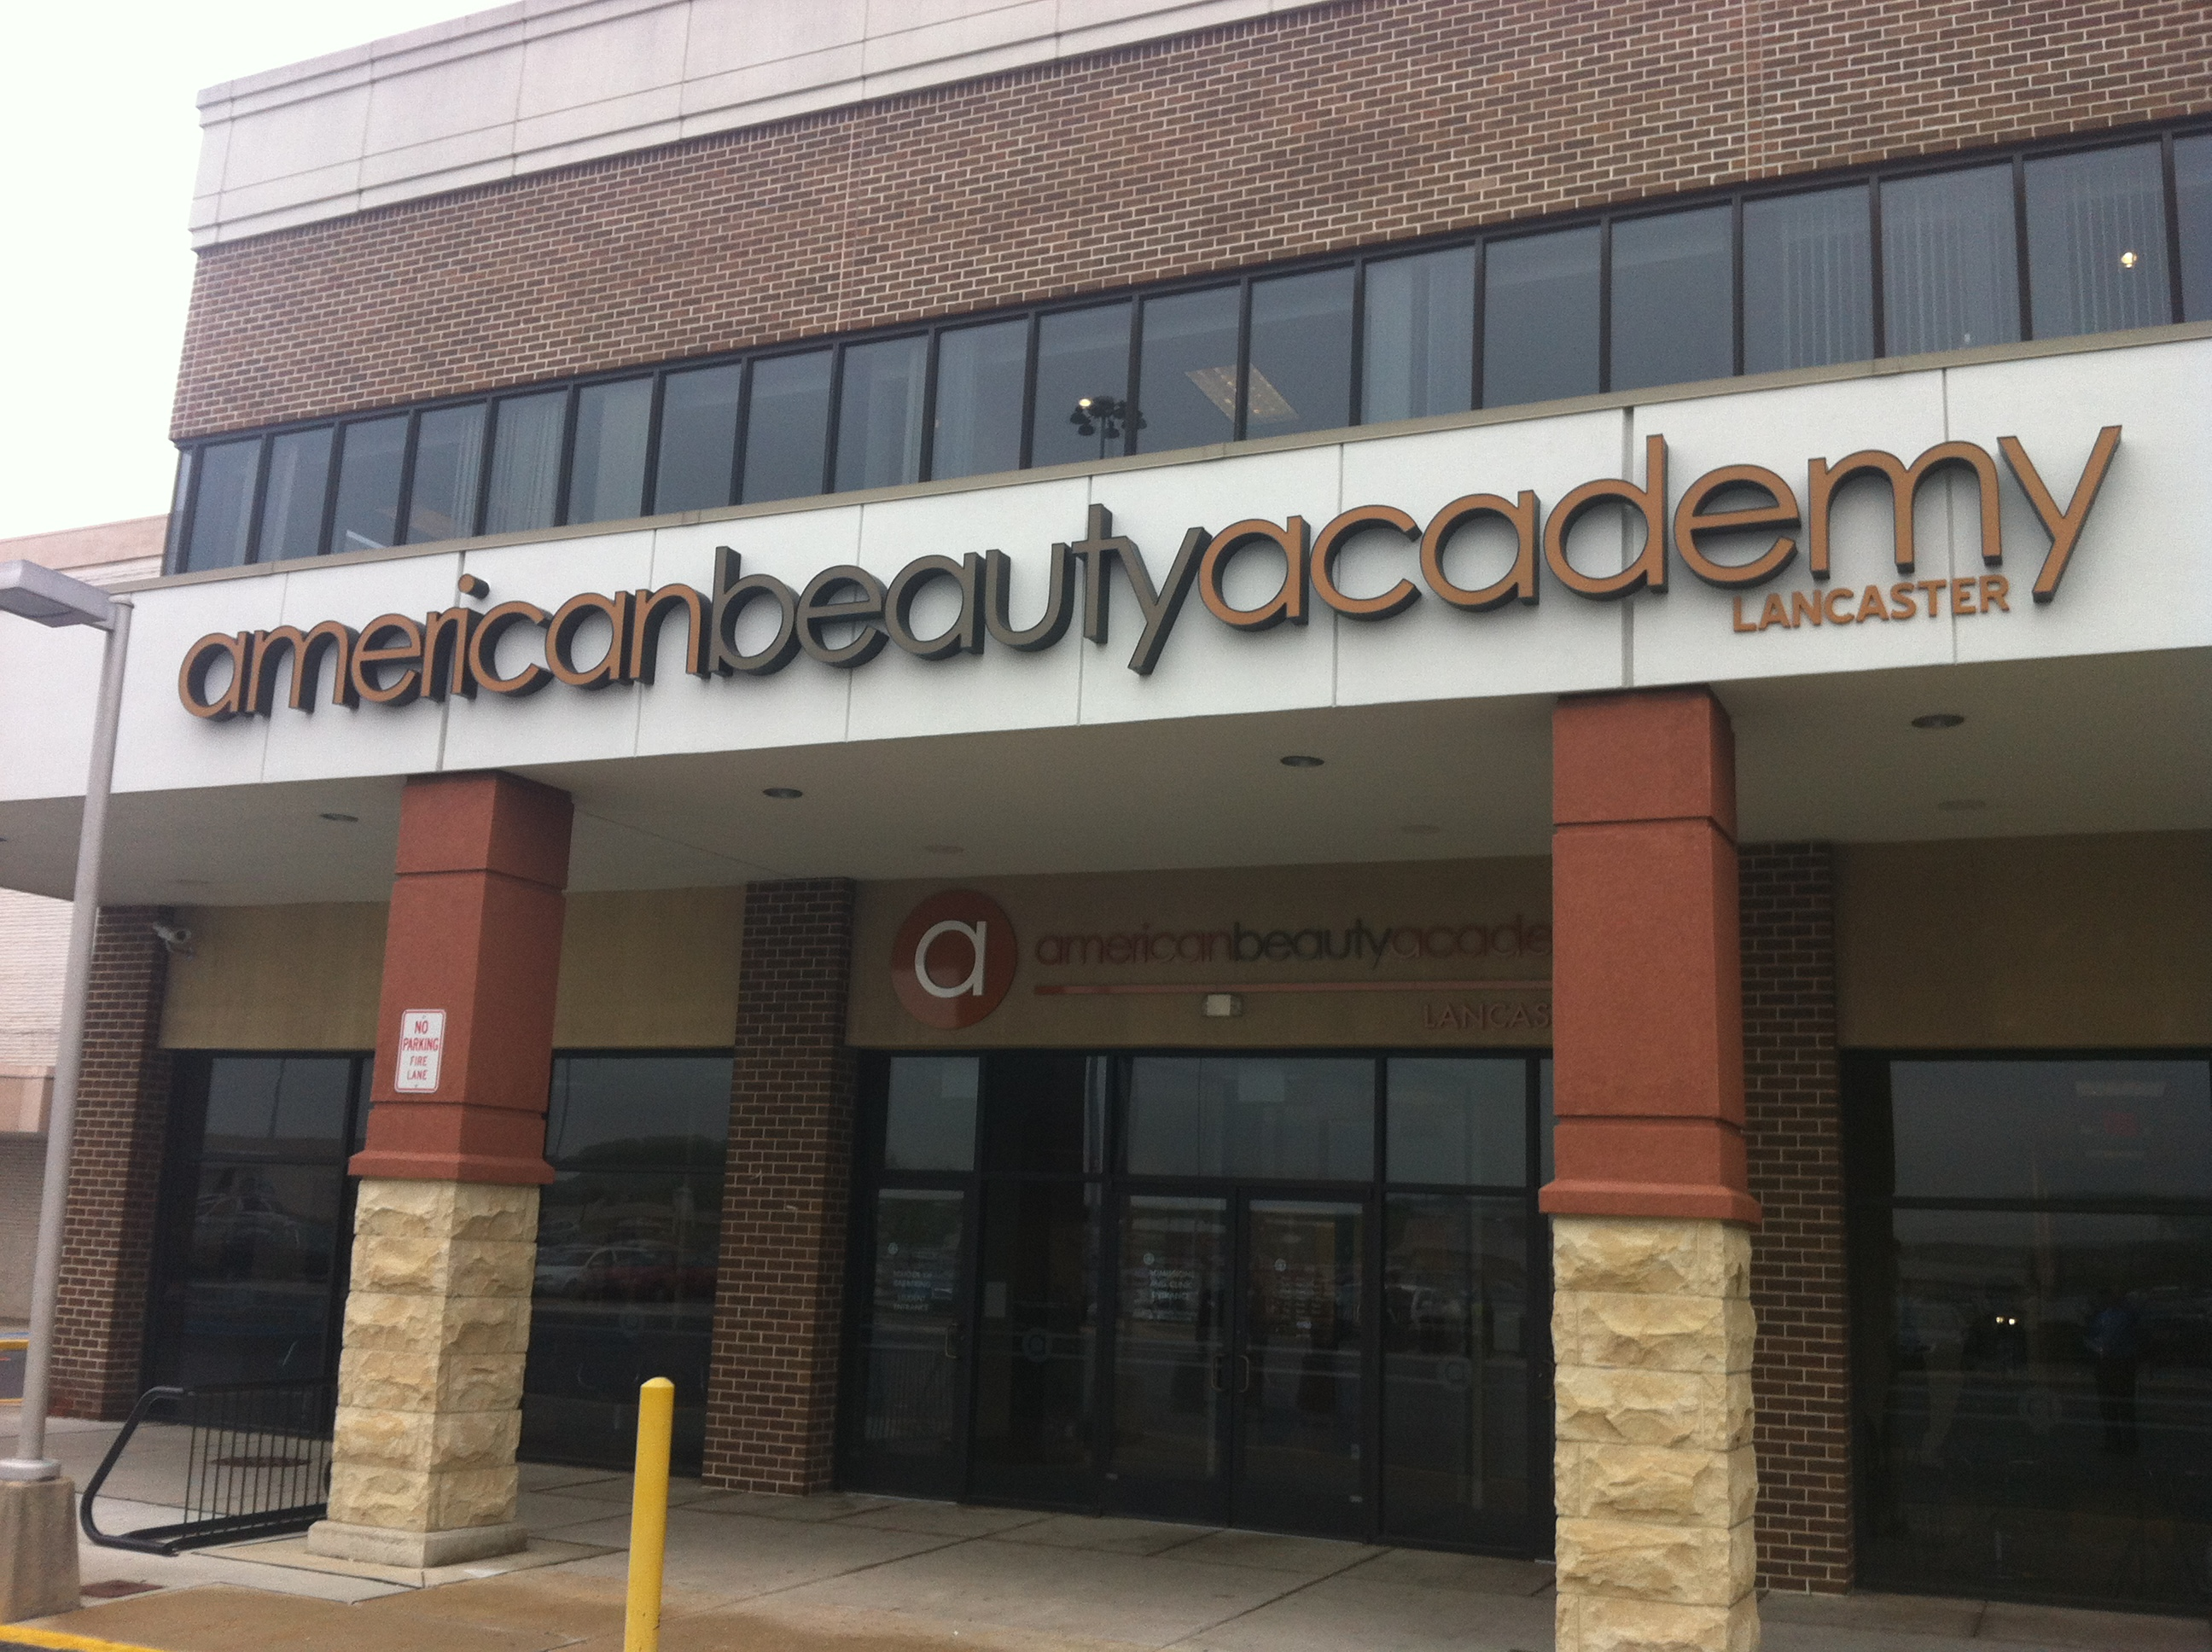 American Beauty Academy, Park City Mall, Lancaster, Pennsylvania